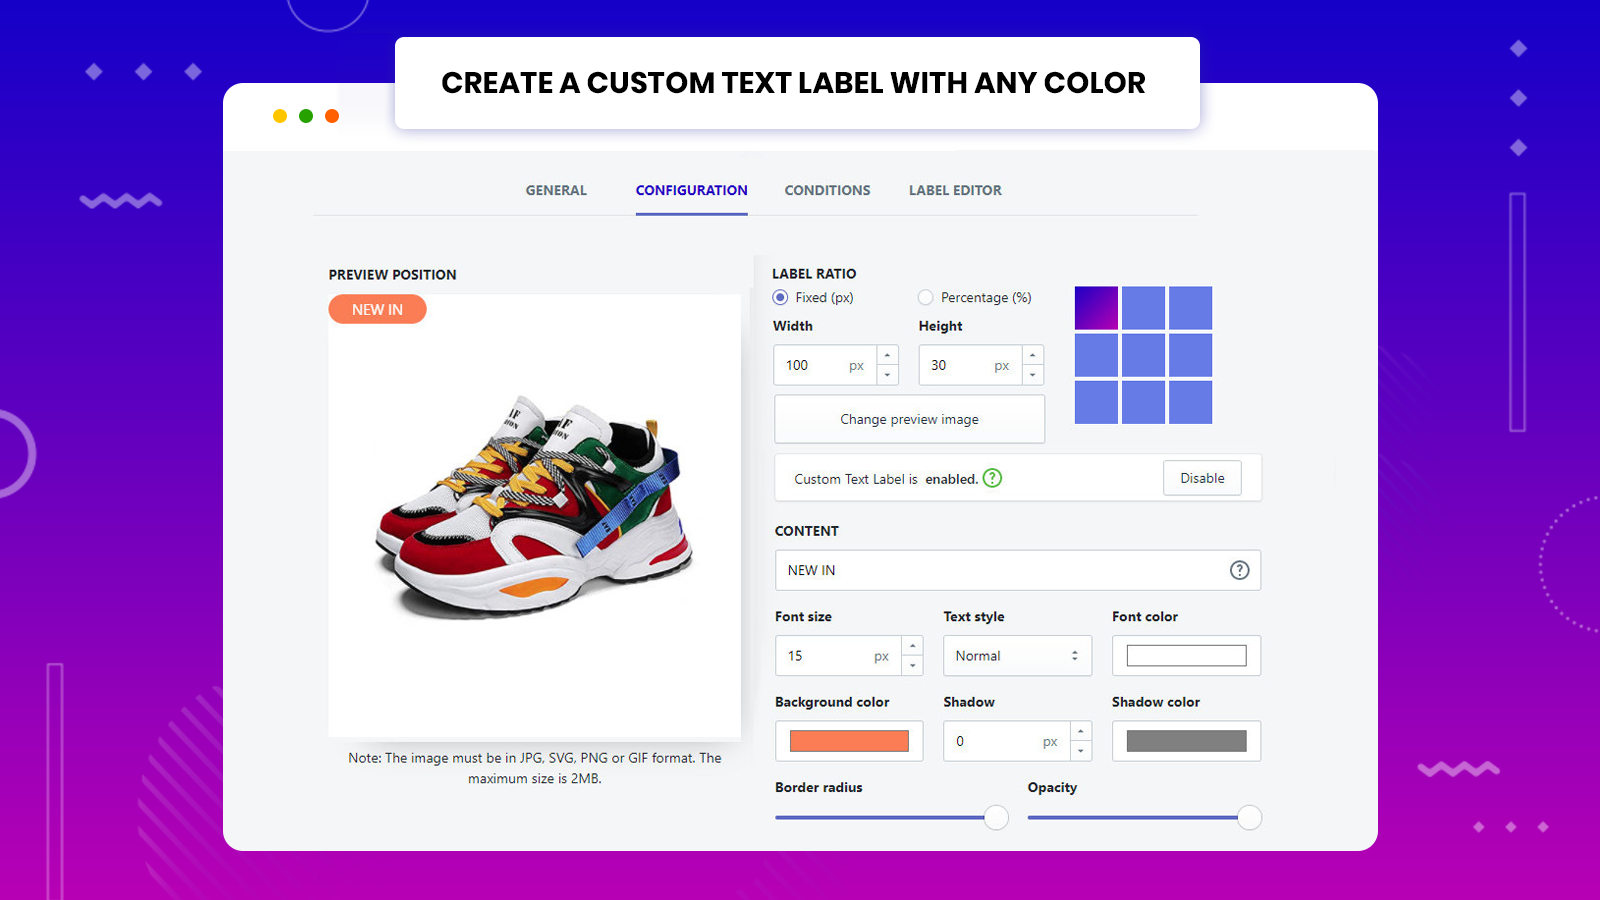 Or use the dynamic custom-text label